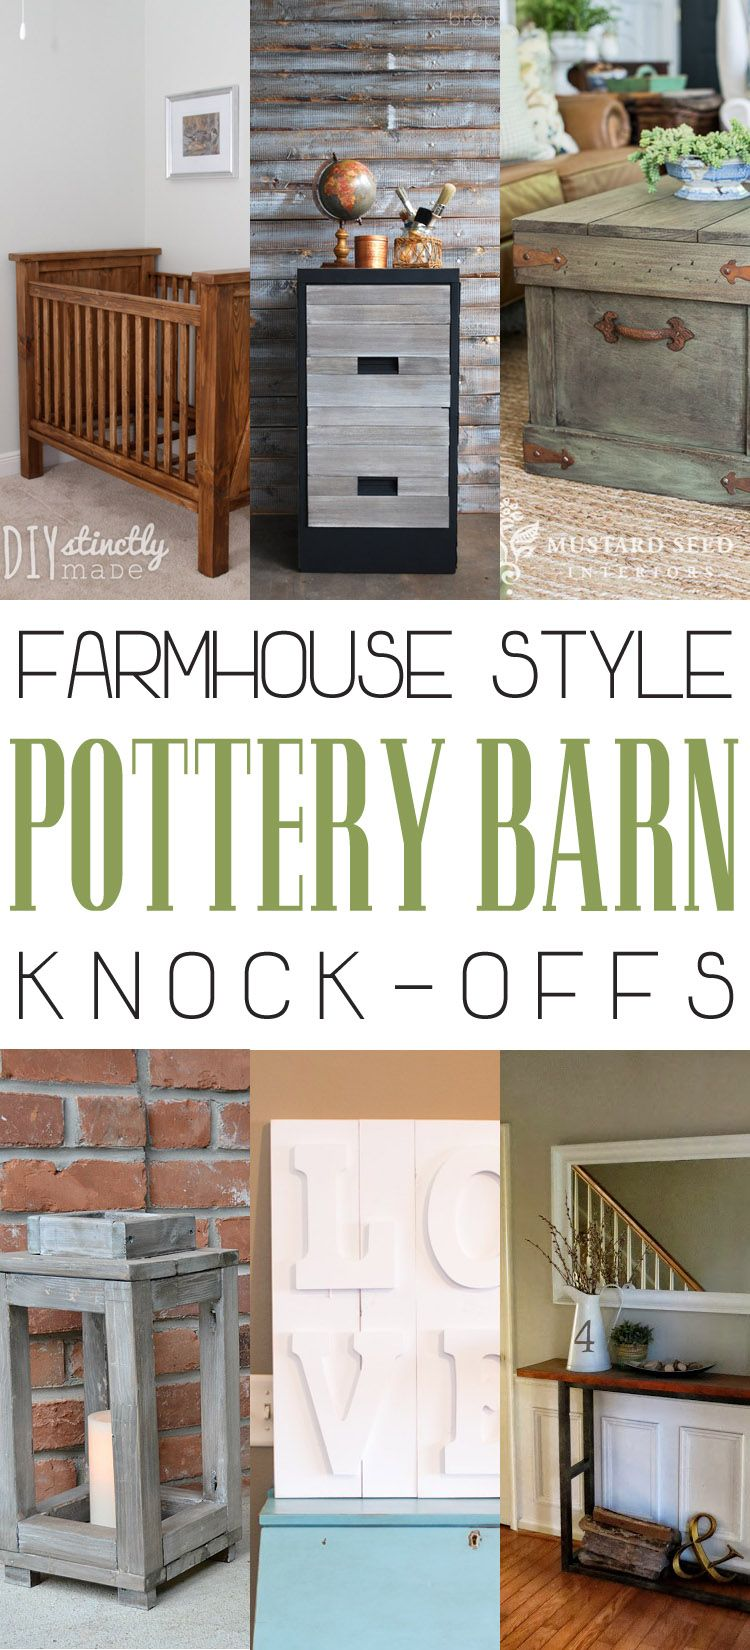 Farmhouse Style Pottery Barn Knockoffs Pottery barn